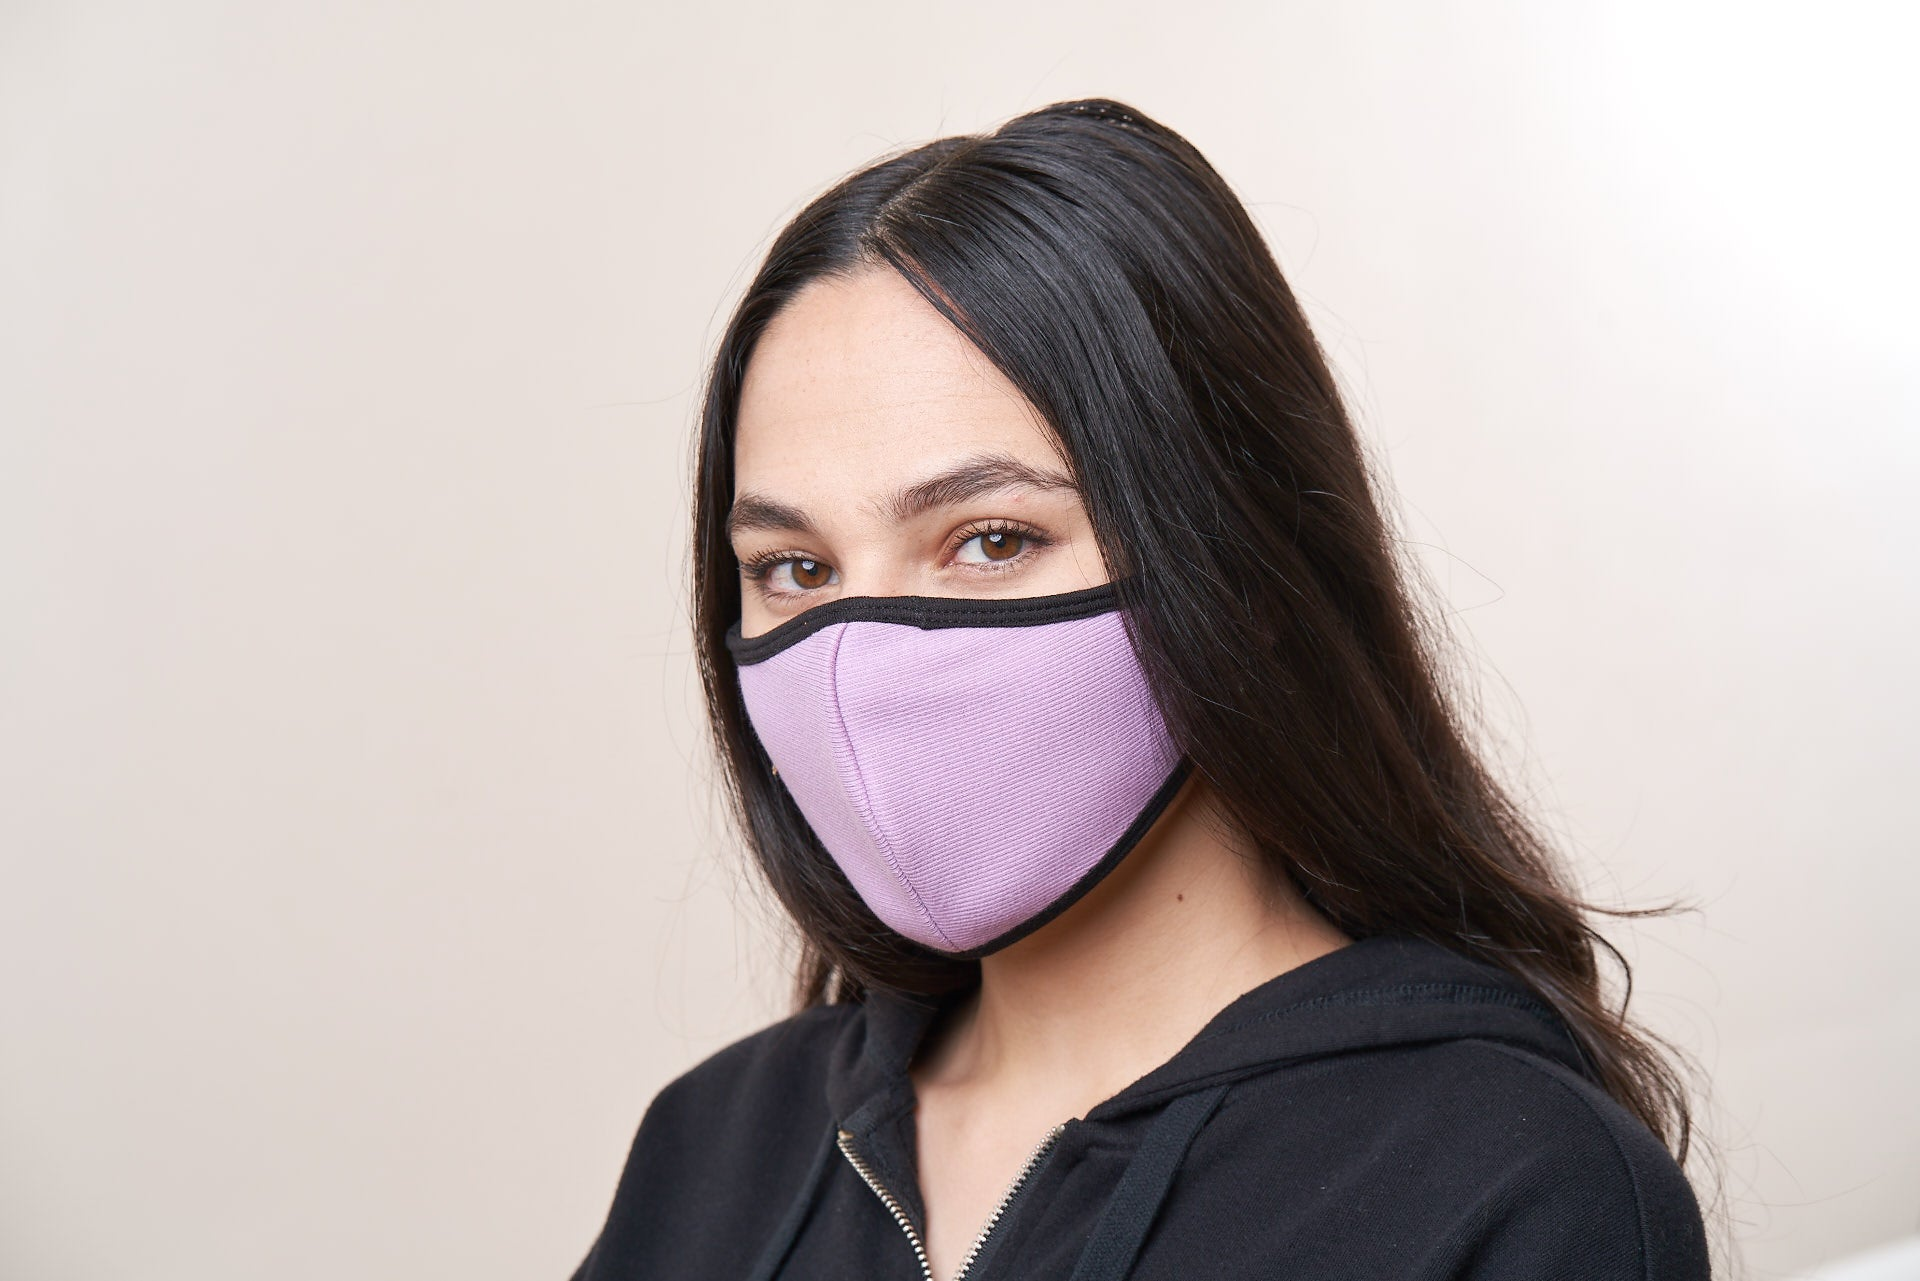 Woman wearing a lavender face mask with black trim.